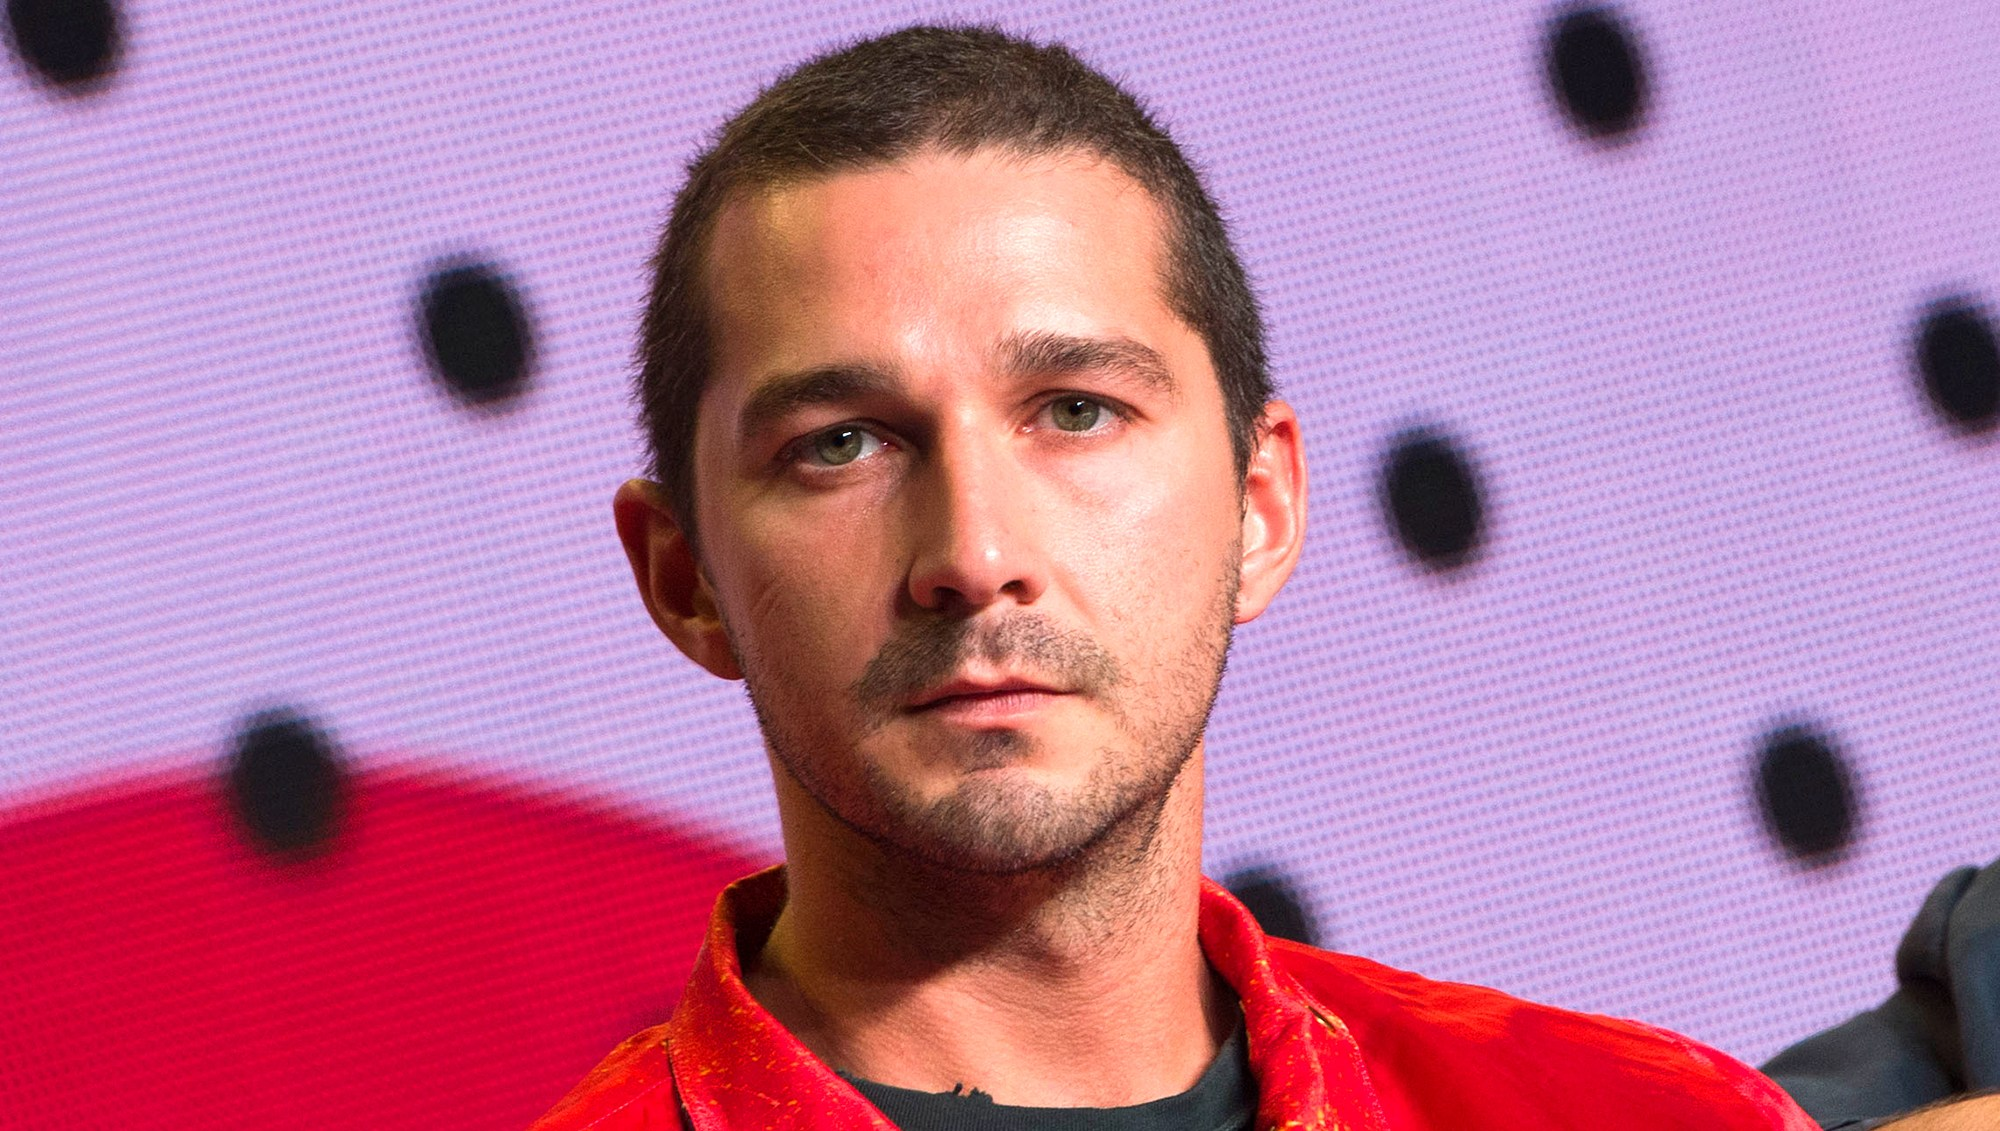 Shia LaBeouf arrest i fucked up